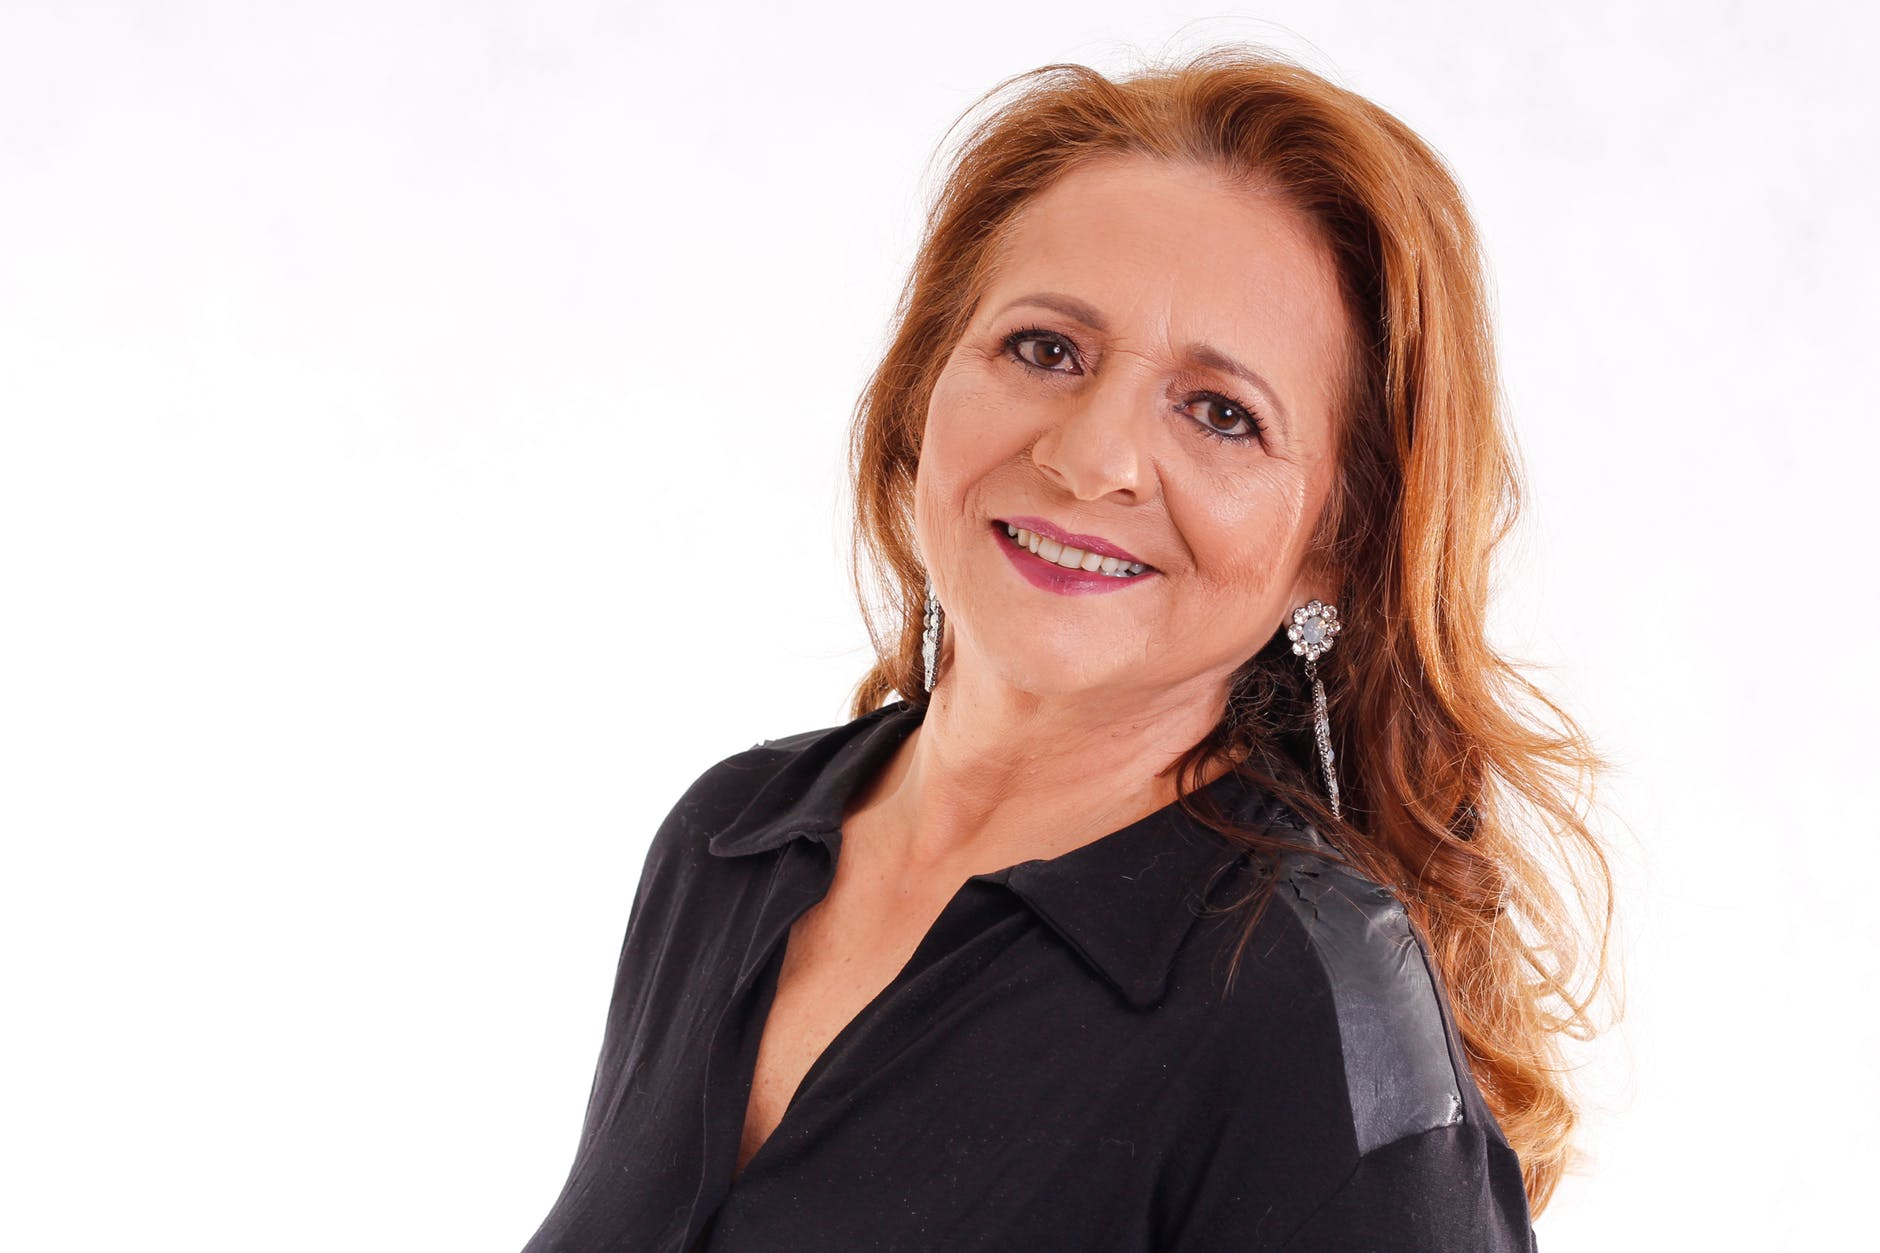 head shot of older woman with long red hair posing in front of white background